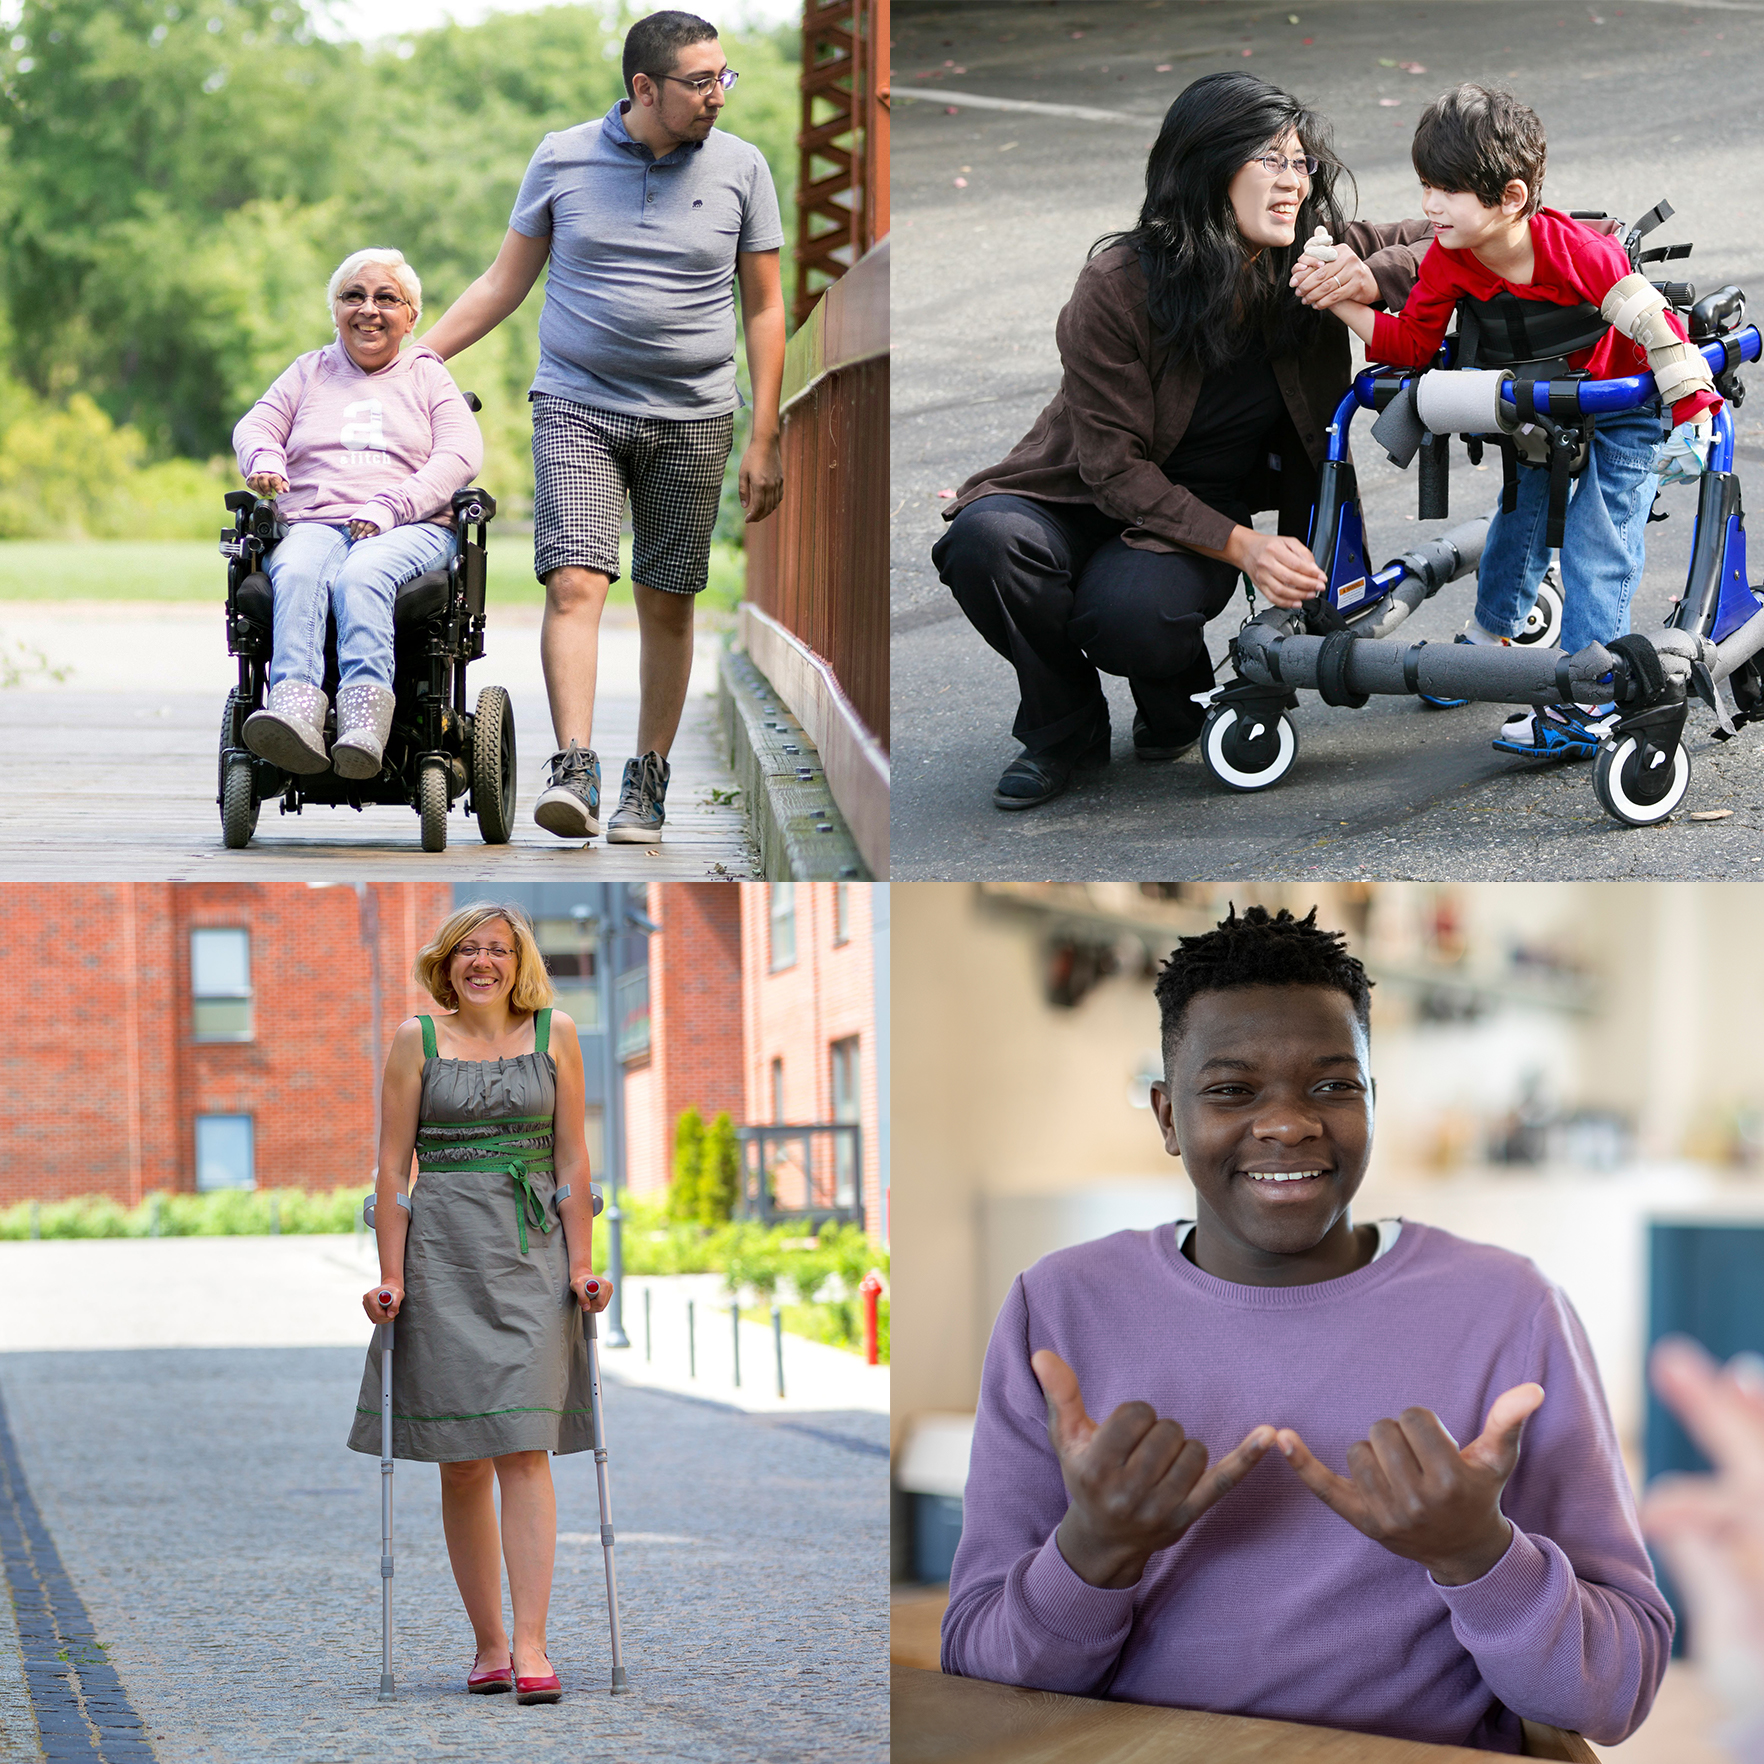 Collage of 4 images representing diverse disabilities